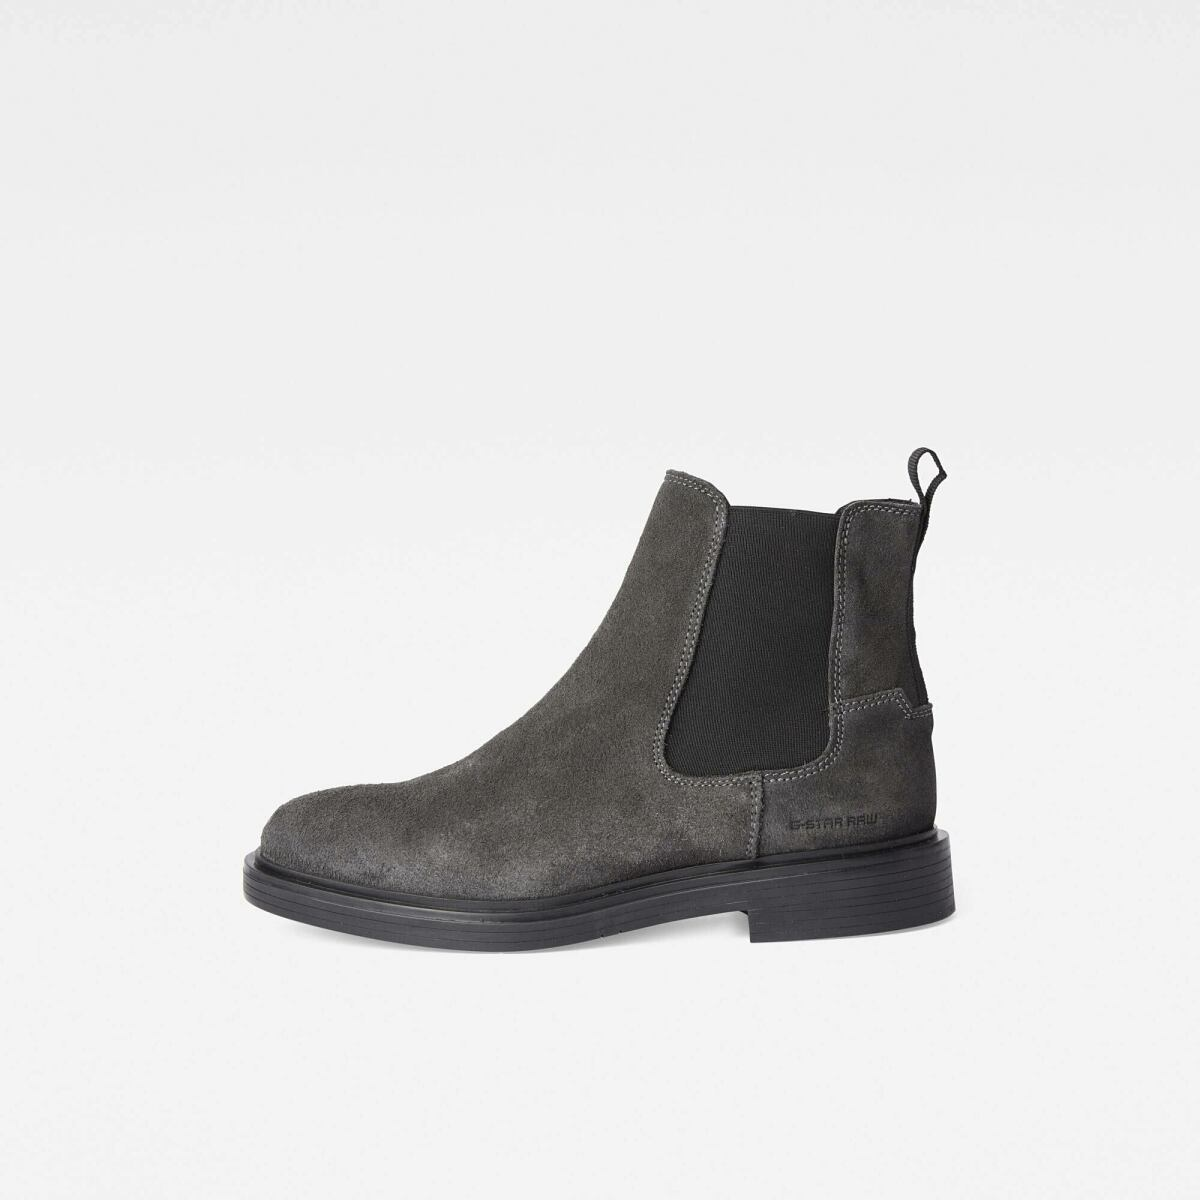 Other Man Shoes Vacum Chelsea Boots Other G-Star MEN